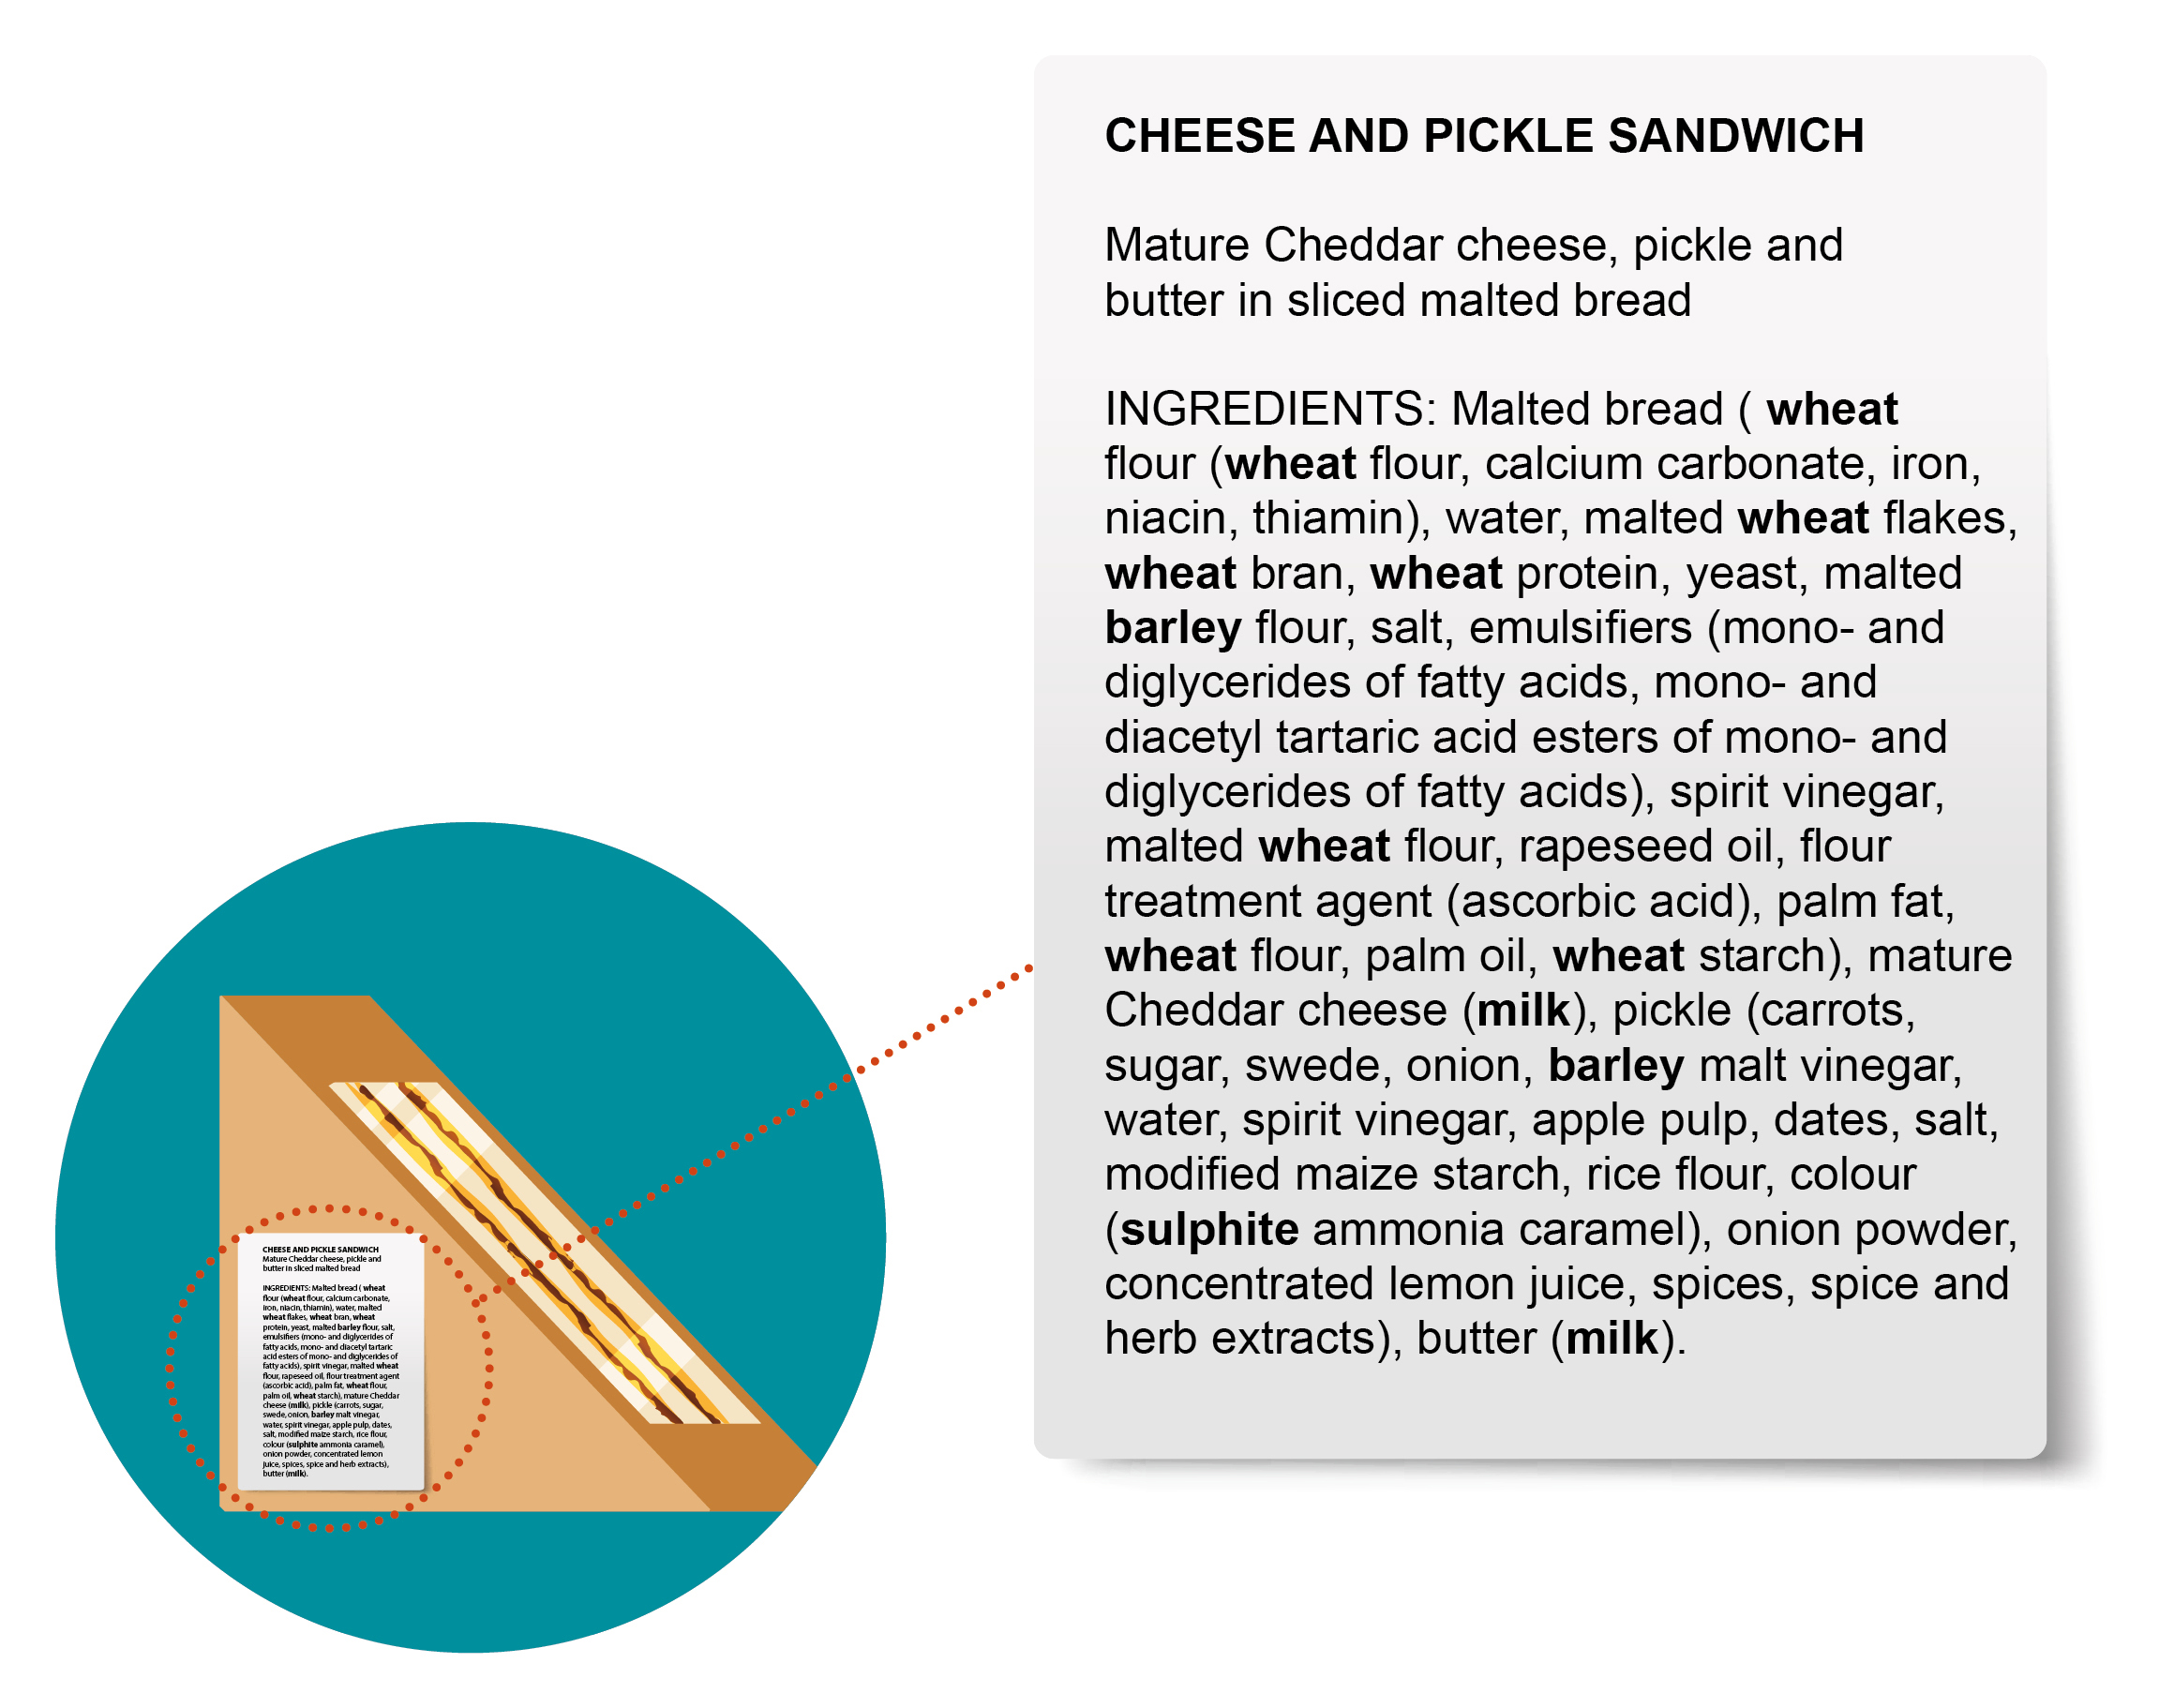 Example Label for PPDS Sandwich - Cheese and pickle sandwich